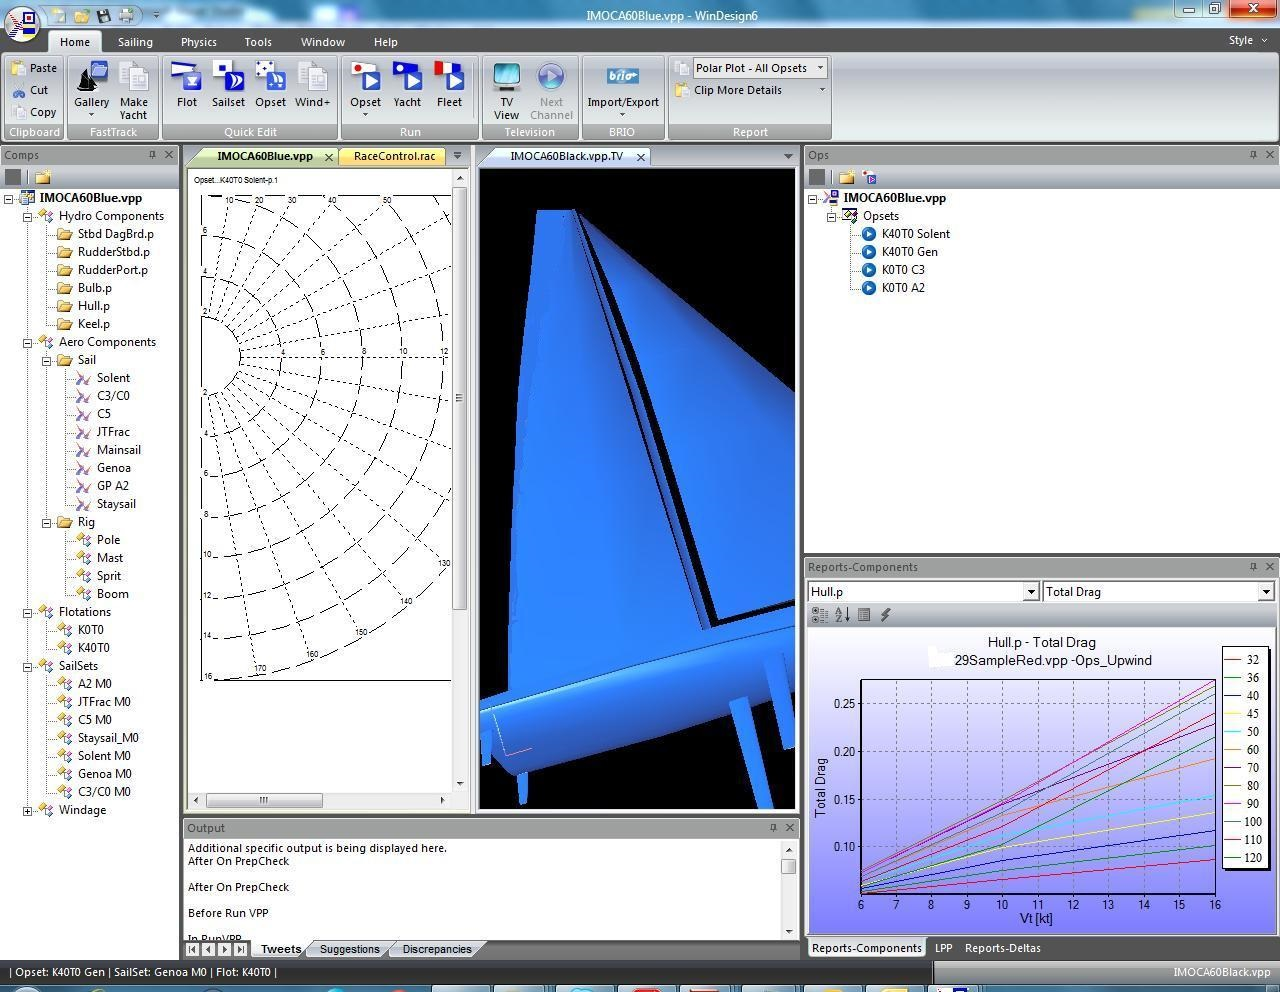 Velocity Performance Prediction software is used particularly in race yacht design to calculate the balance of hydrodynamic and aerodynamic forces thereby predicting the speed of a sailing yacht in a range of conditions. Other outputs include sail, ballast and foil usage crossovers. Recent development in multihull and monohull foiling designs have required the development of more complex dynamic VPPs capable of predicting the effects of motion and trim in order to balance the forces acting on the yacht.